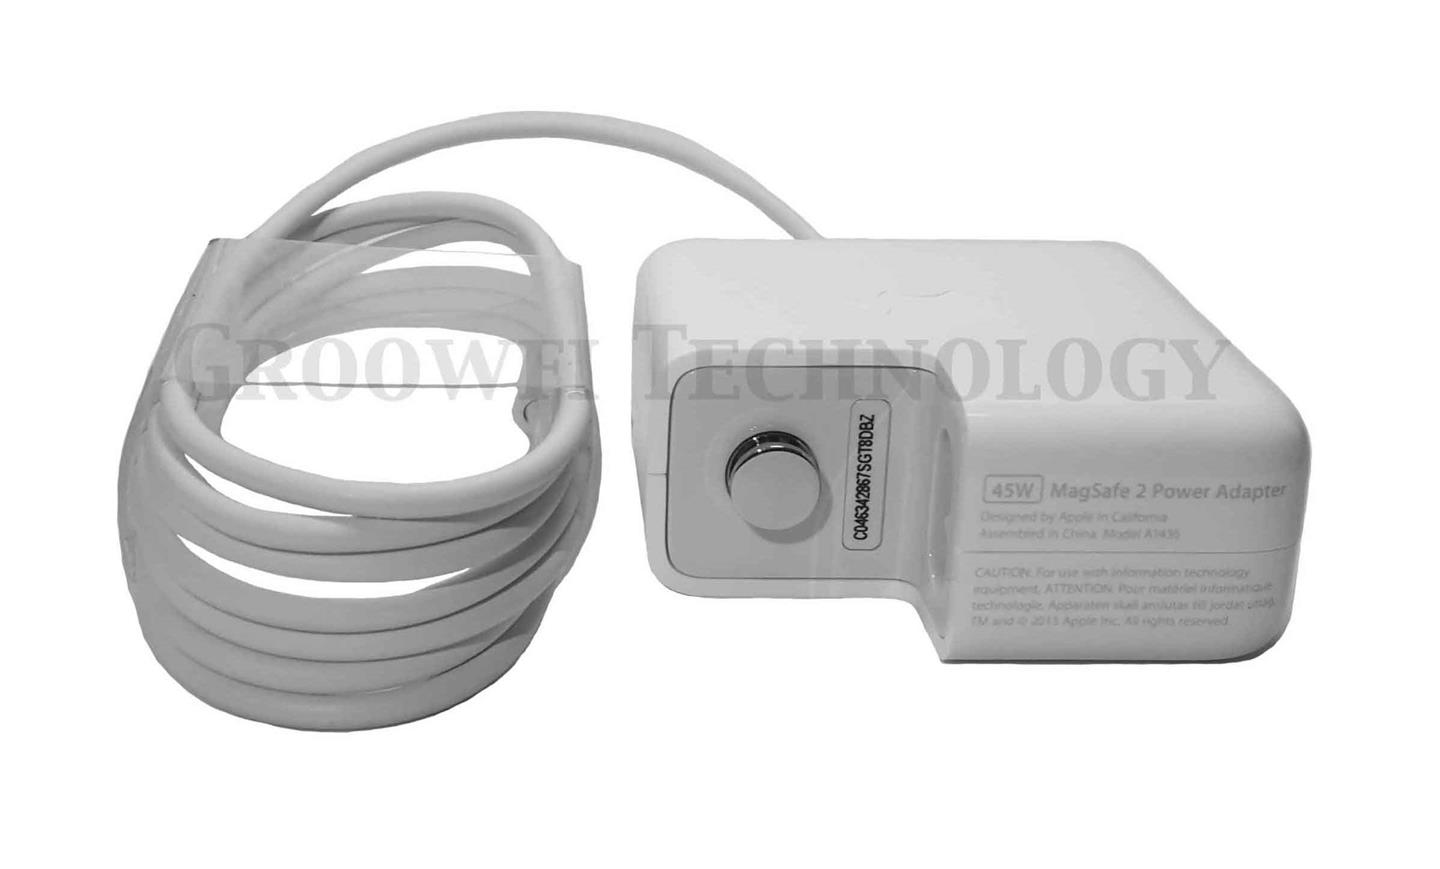 Original Apple MacBook Air 45W MagSafe 2 Power Adapter Charger